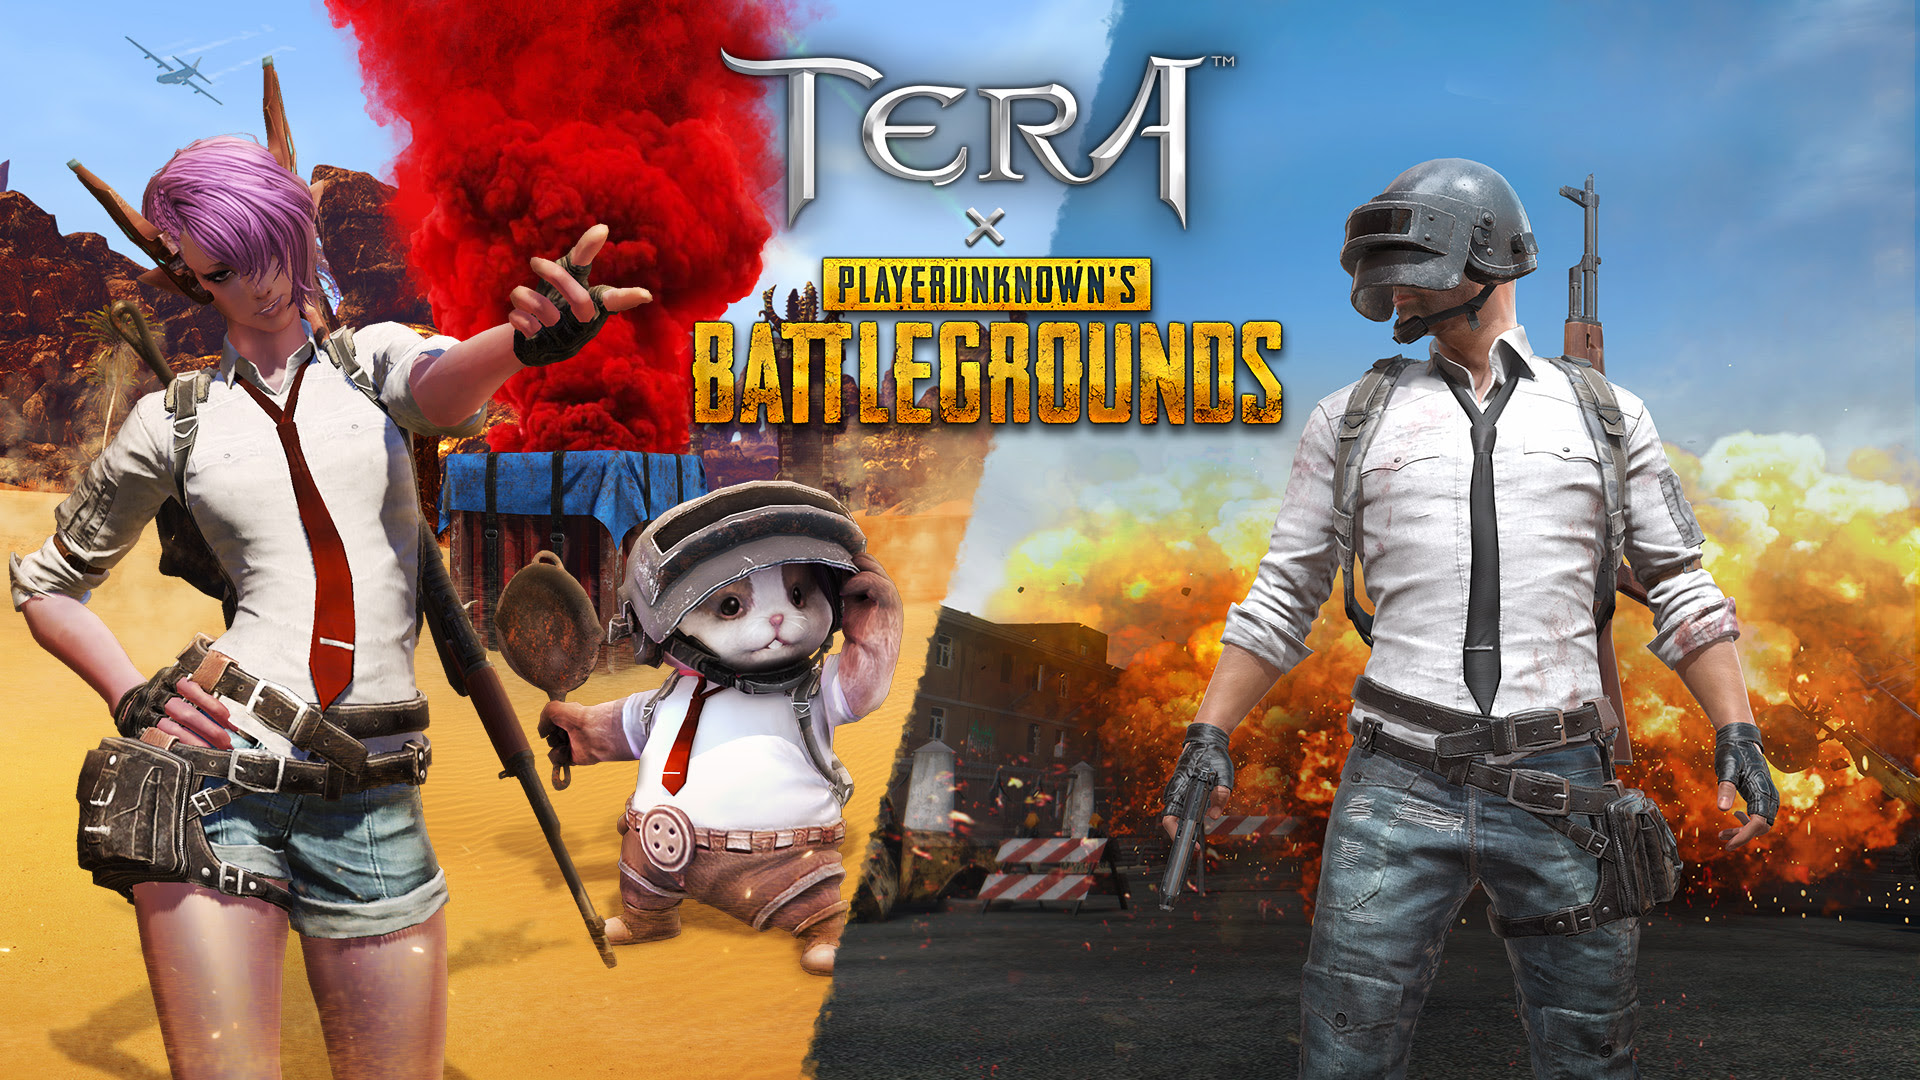 sports shoes c78e3 e62c9 En Masse Entertainment, a player-driven publisher focused on delivering  great games and great service, today announced TERA x Playerunknown s  Battlegrounds, ...